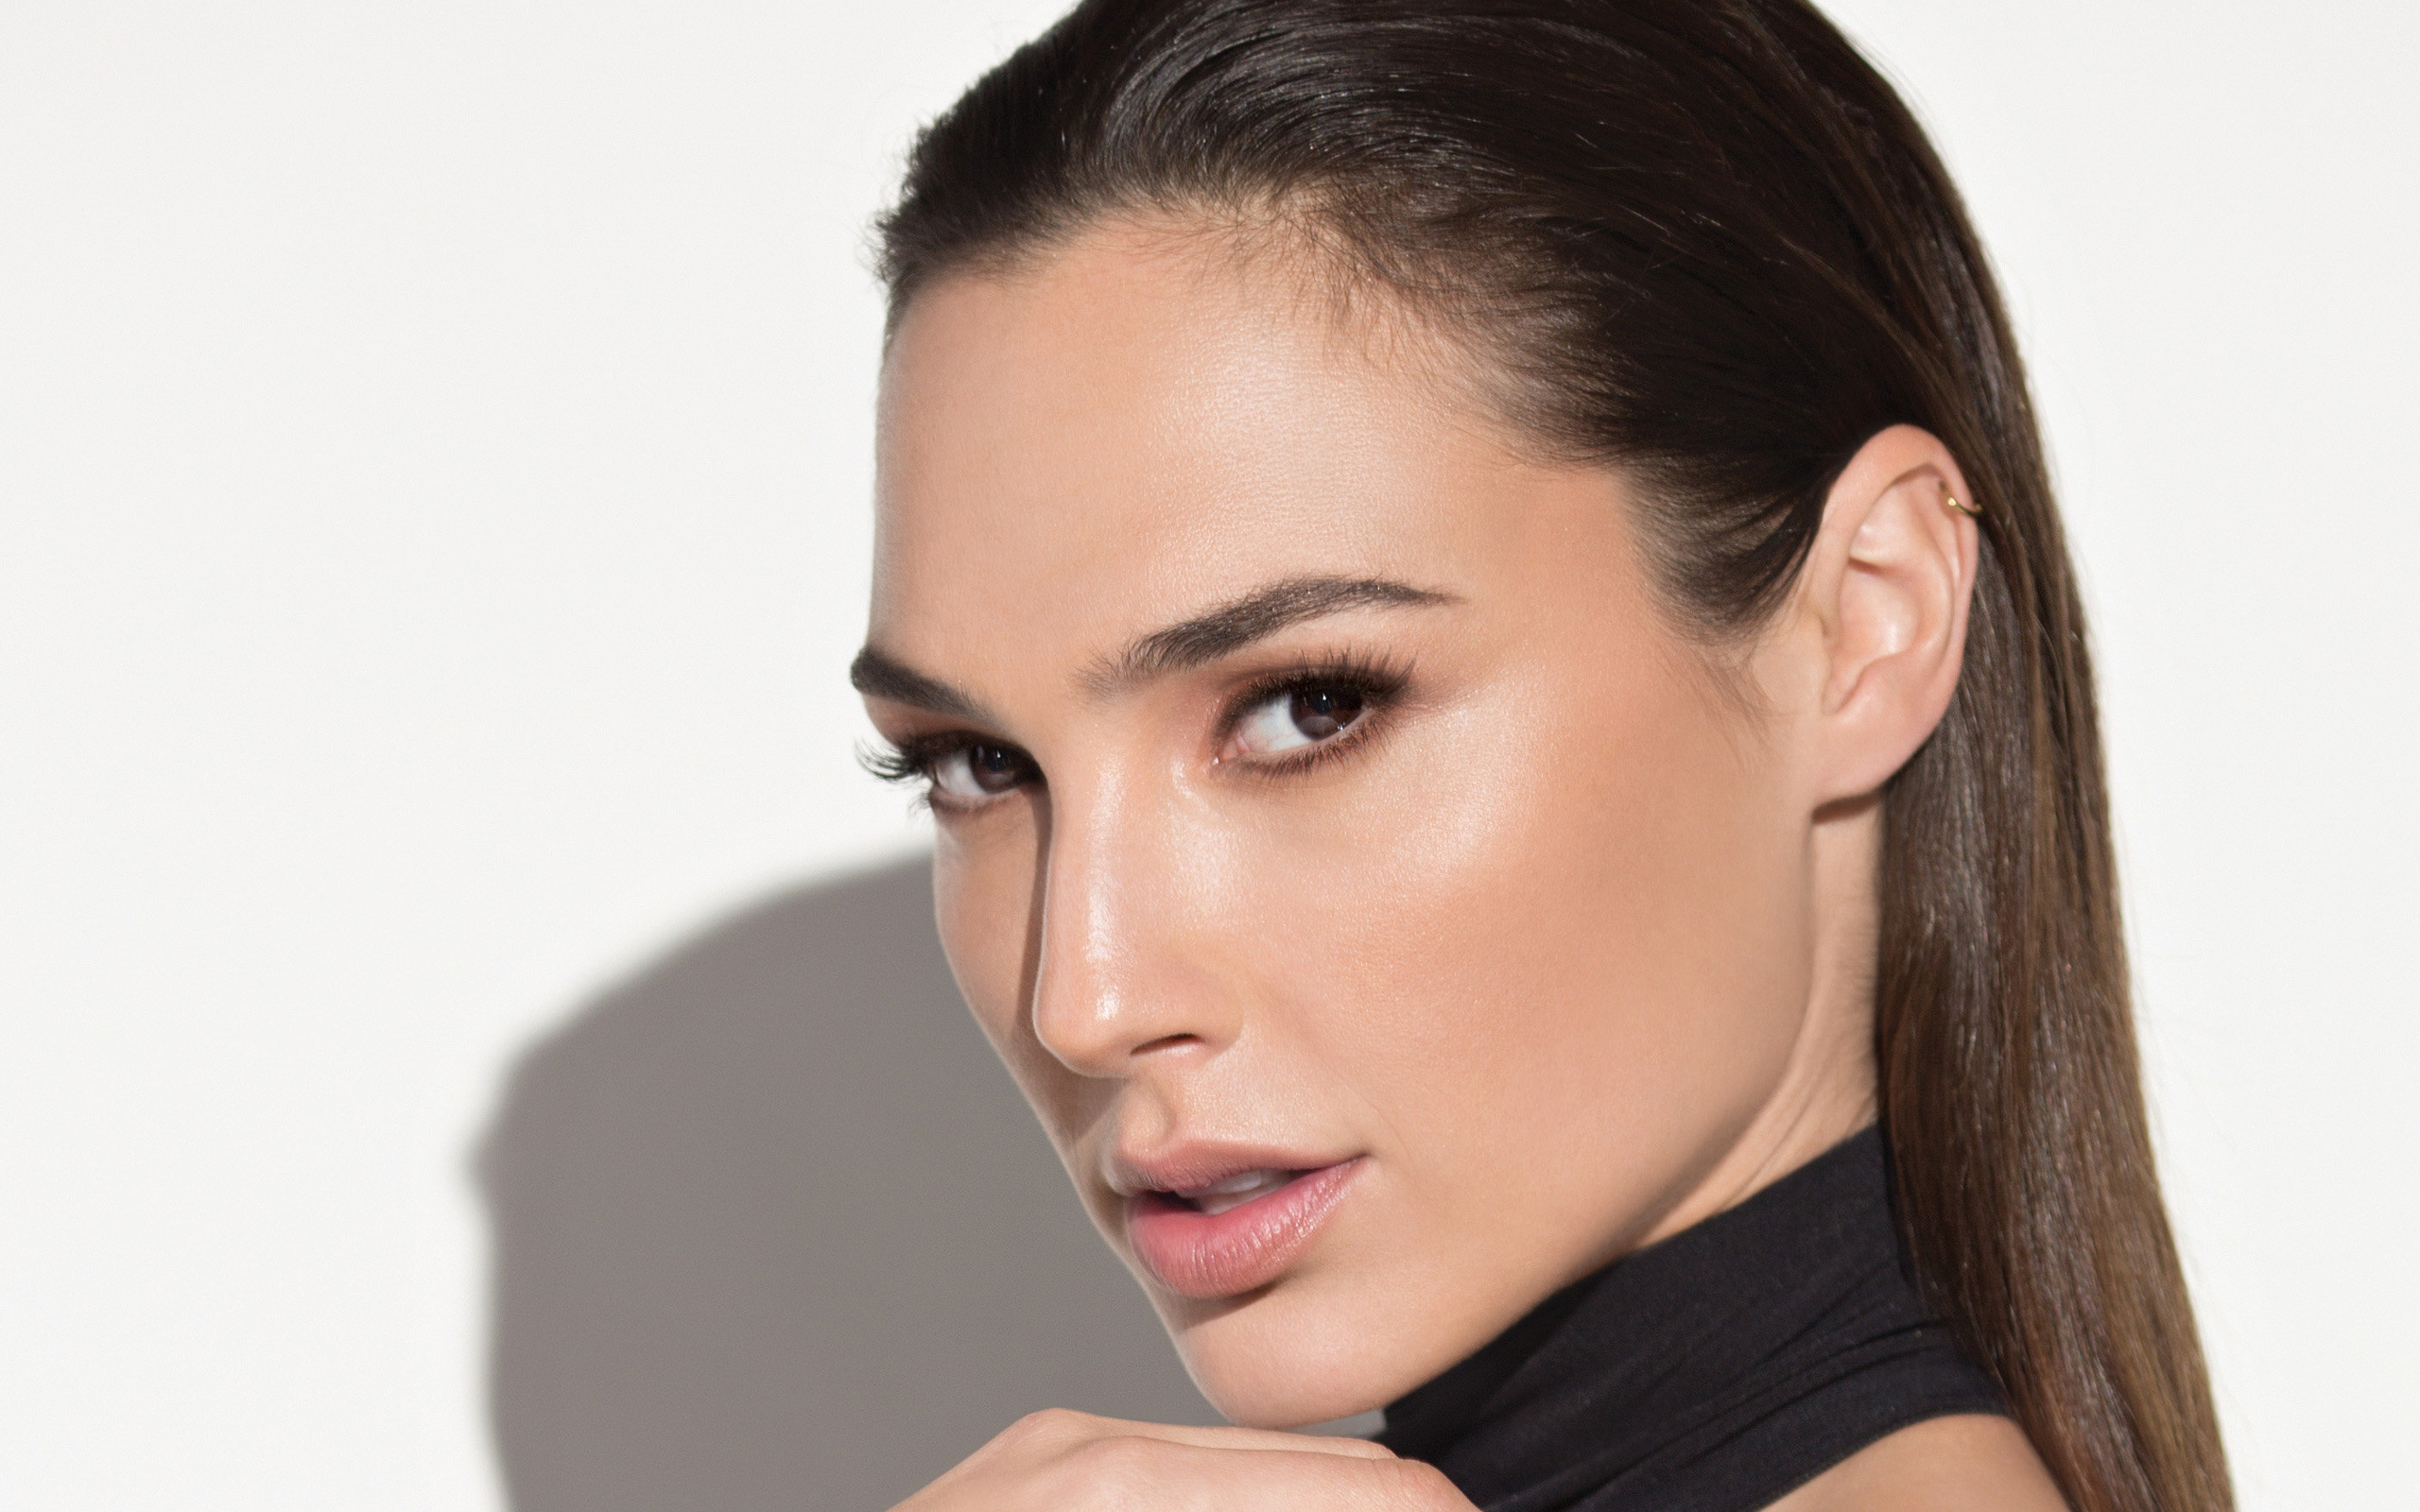 gal gadot wallpapers pictures images. Black Bedroom Furniture Sets. Home Design Ideas